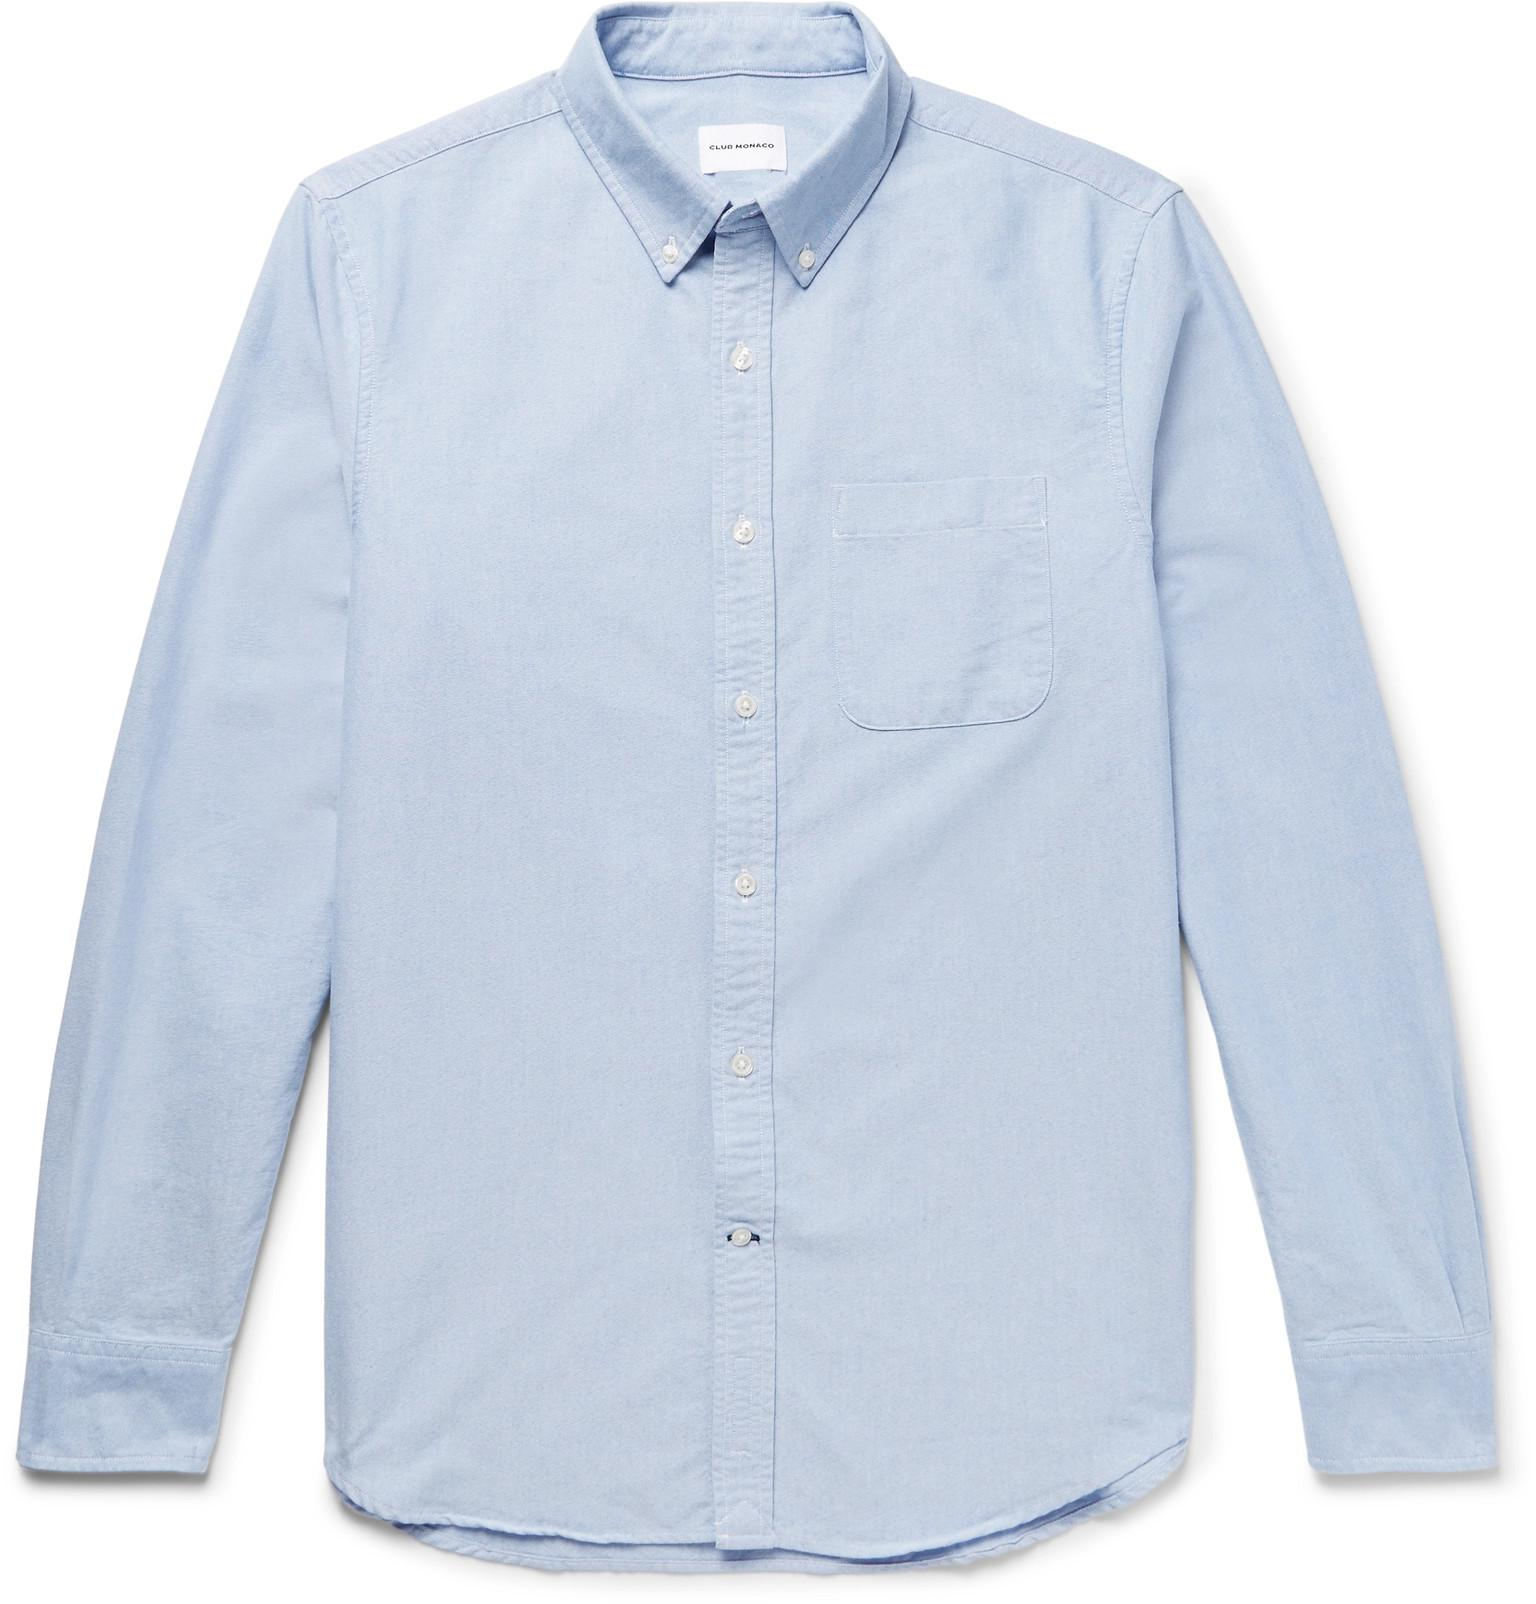 51faad229df Club Monaco - Blue Button-down Collar Cotton Oxford Shirt for Men - Lyst.  View fullscreen